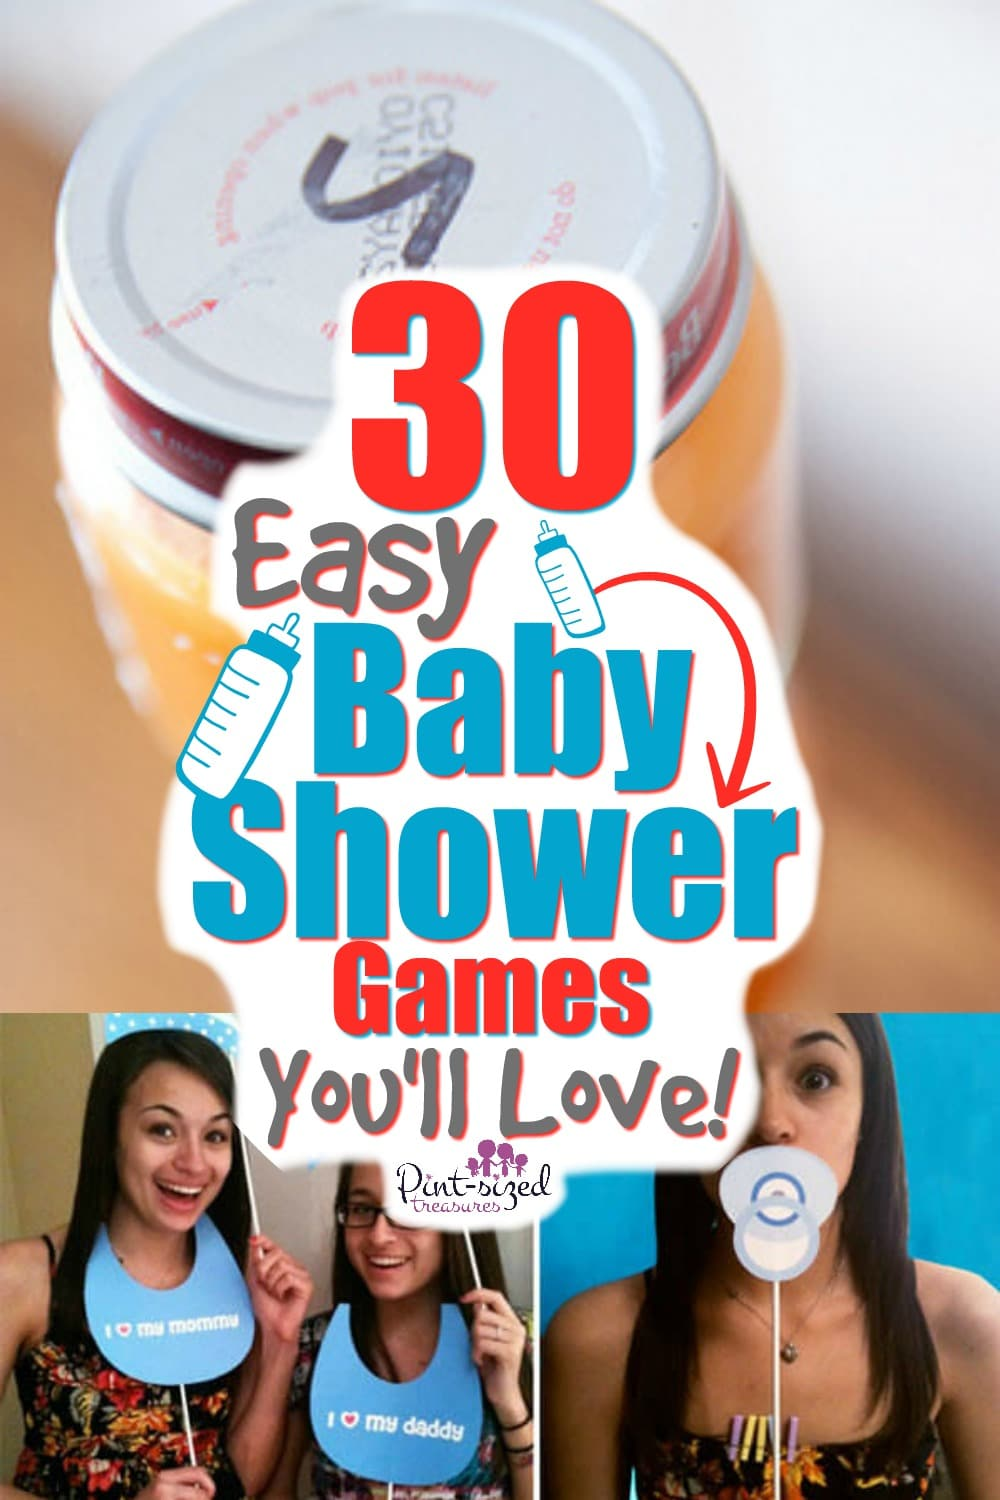 easy baby shower games you'll love